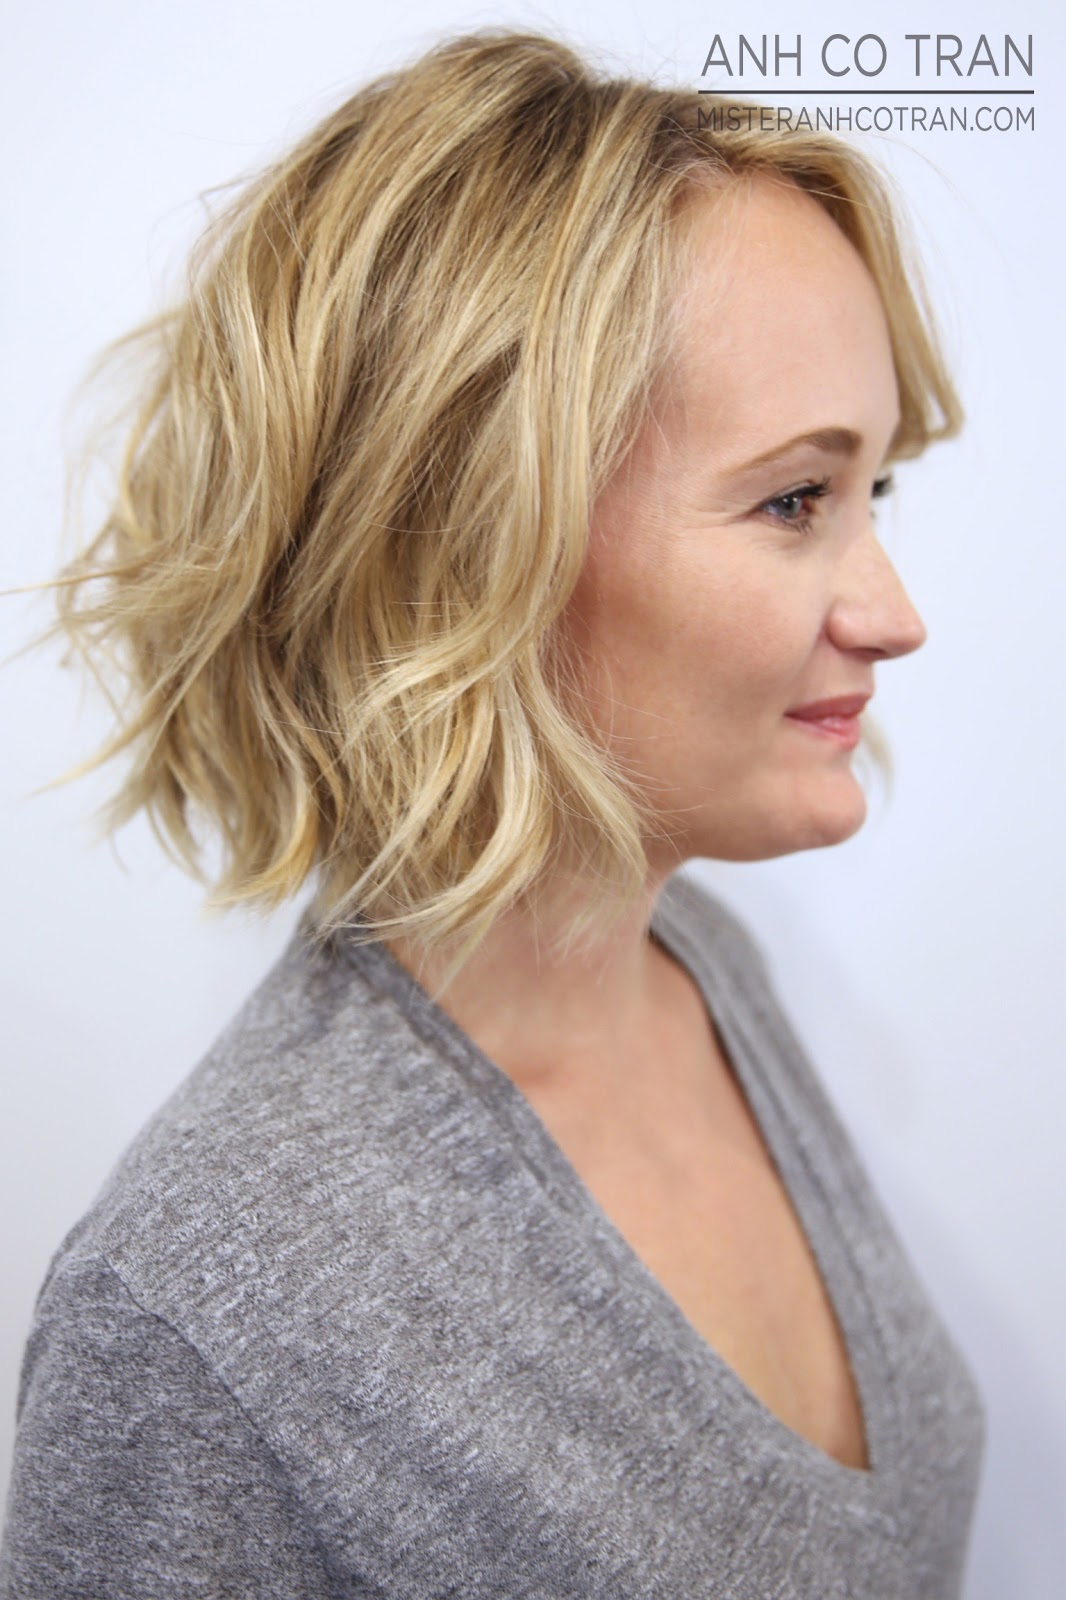 SHORT HAIR SATURDAY (FROM ALL ANGLES)